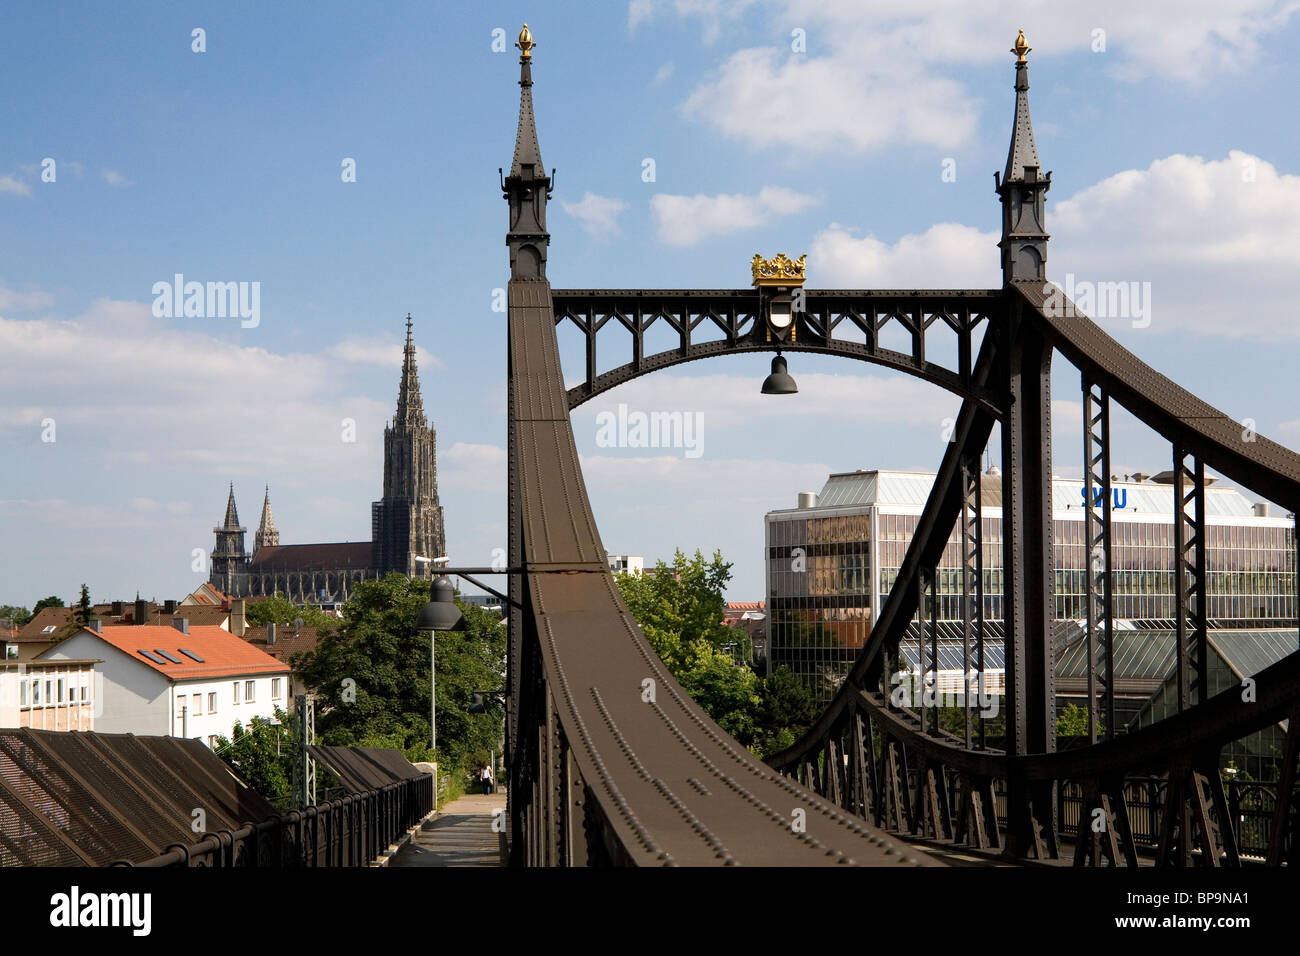 Ulm Minster stands beyond the  Neutor Bruecke (New Gate Bridge) in Ulm, Germany. - Stock Image